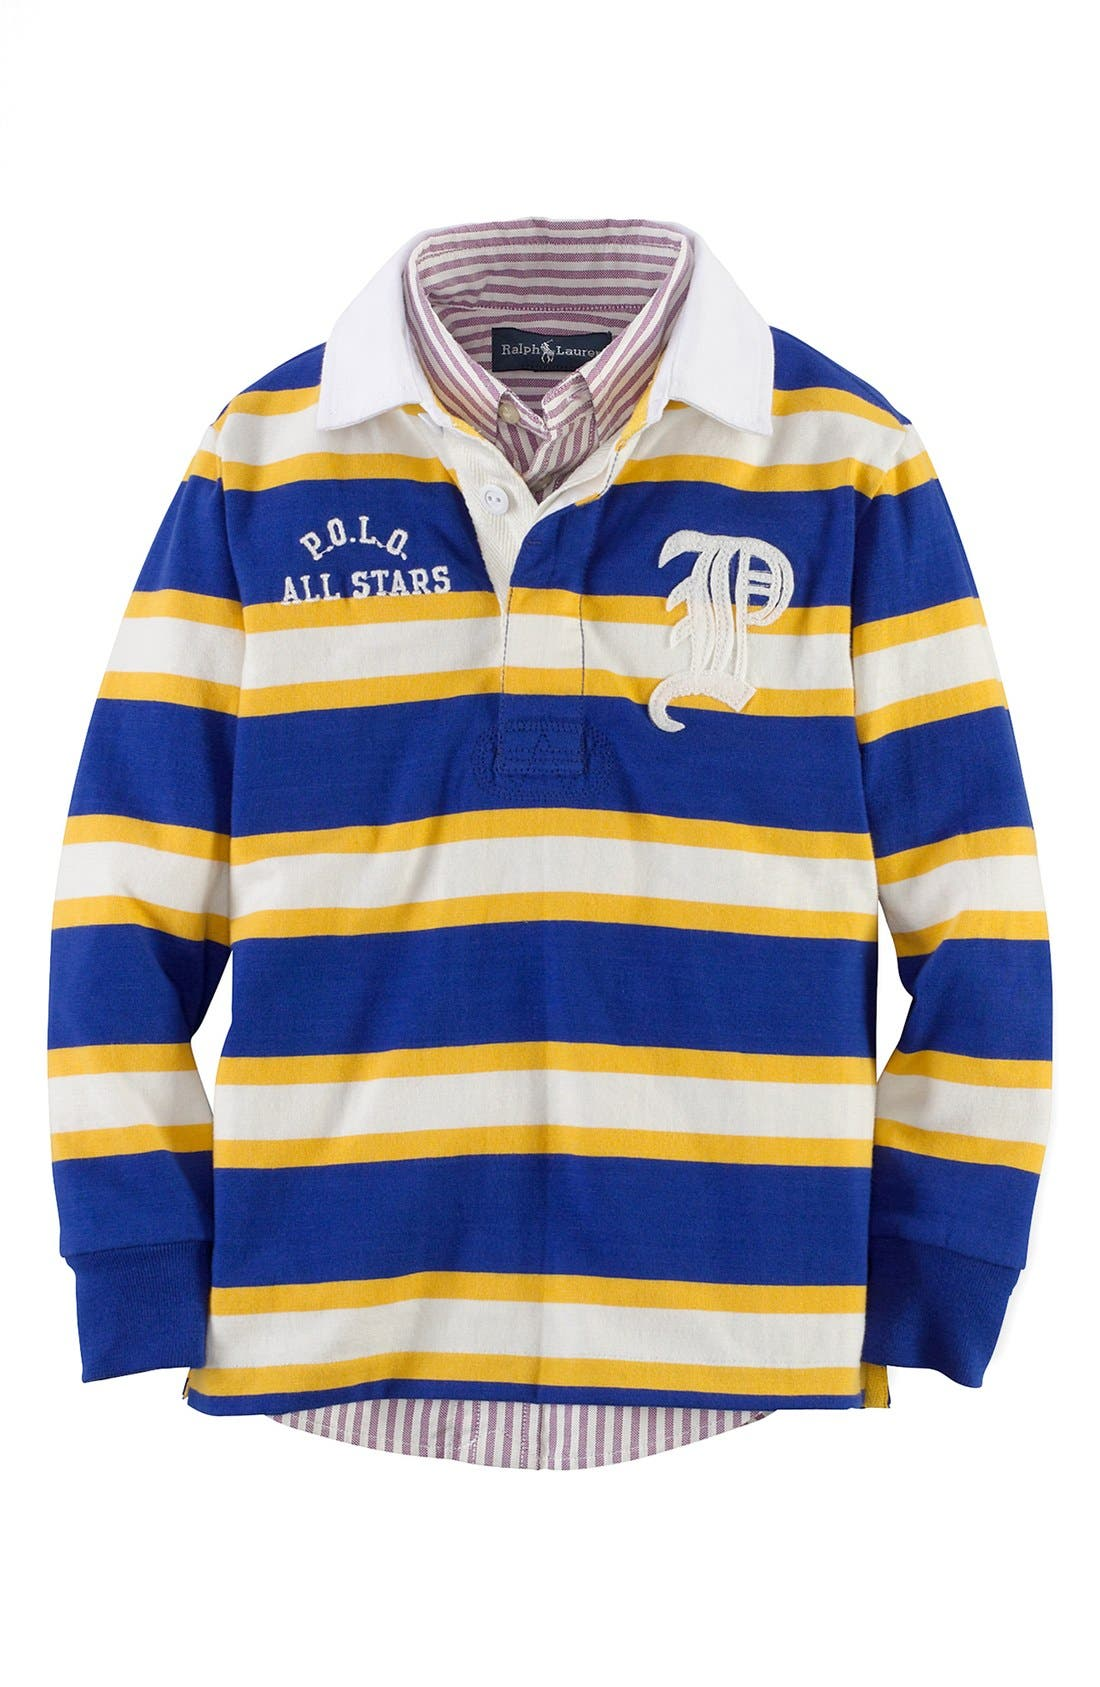 Alternate Image 1 Selected - Ralph Lauren Rugby Polo (Toddler Boys)